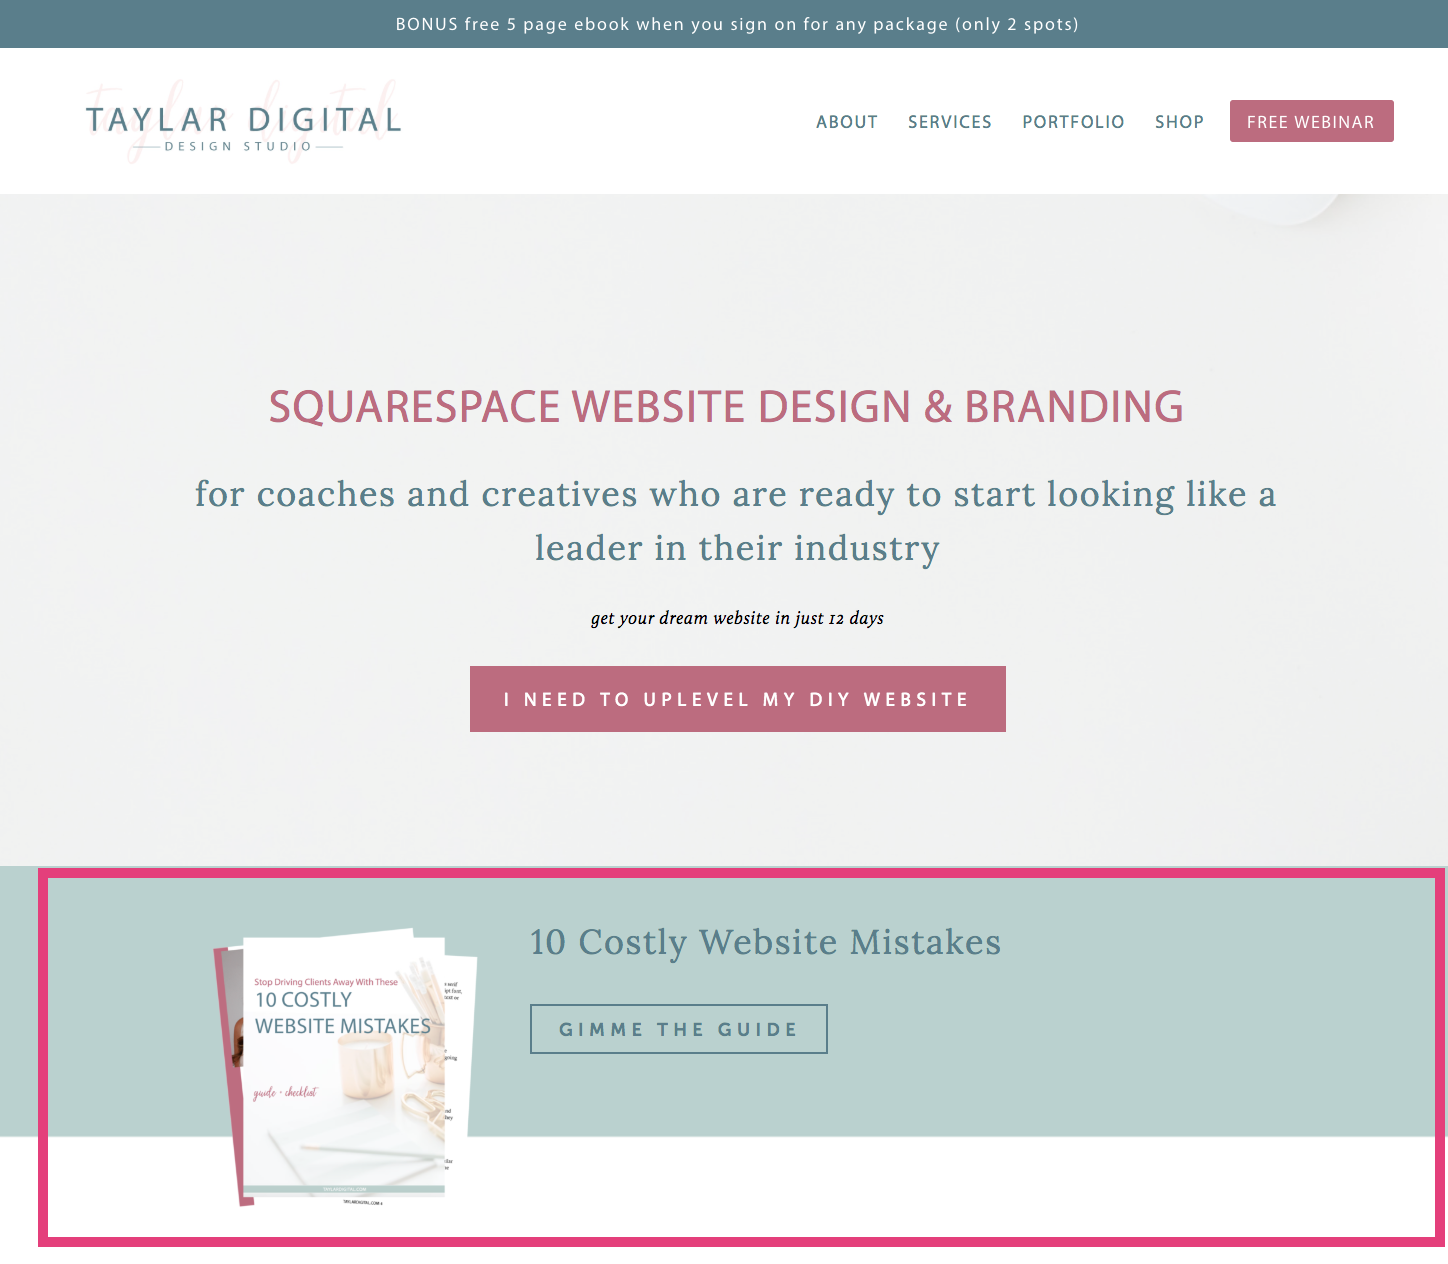 7 Places to Promote Your Freebie on Your Squarespace Website 4.png